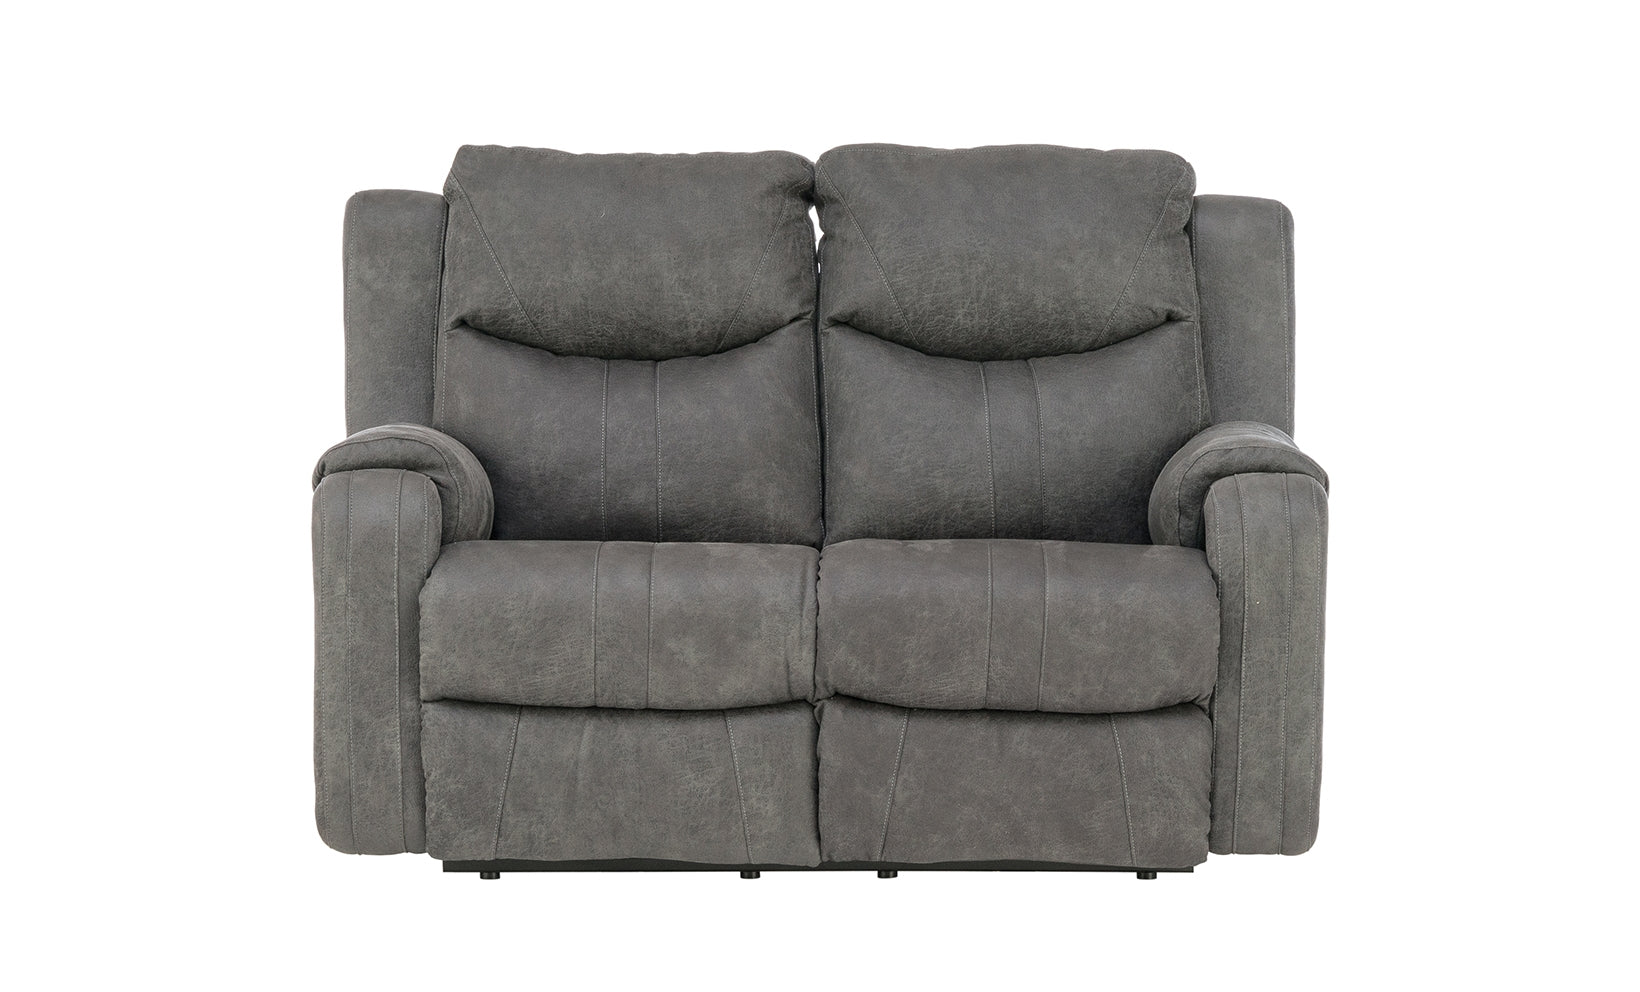 Prime Marvel Bombshell Ink Power Reclining Loveseat Ocoug Best Dining Table And Chair Ideas Images Ocougorg